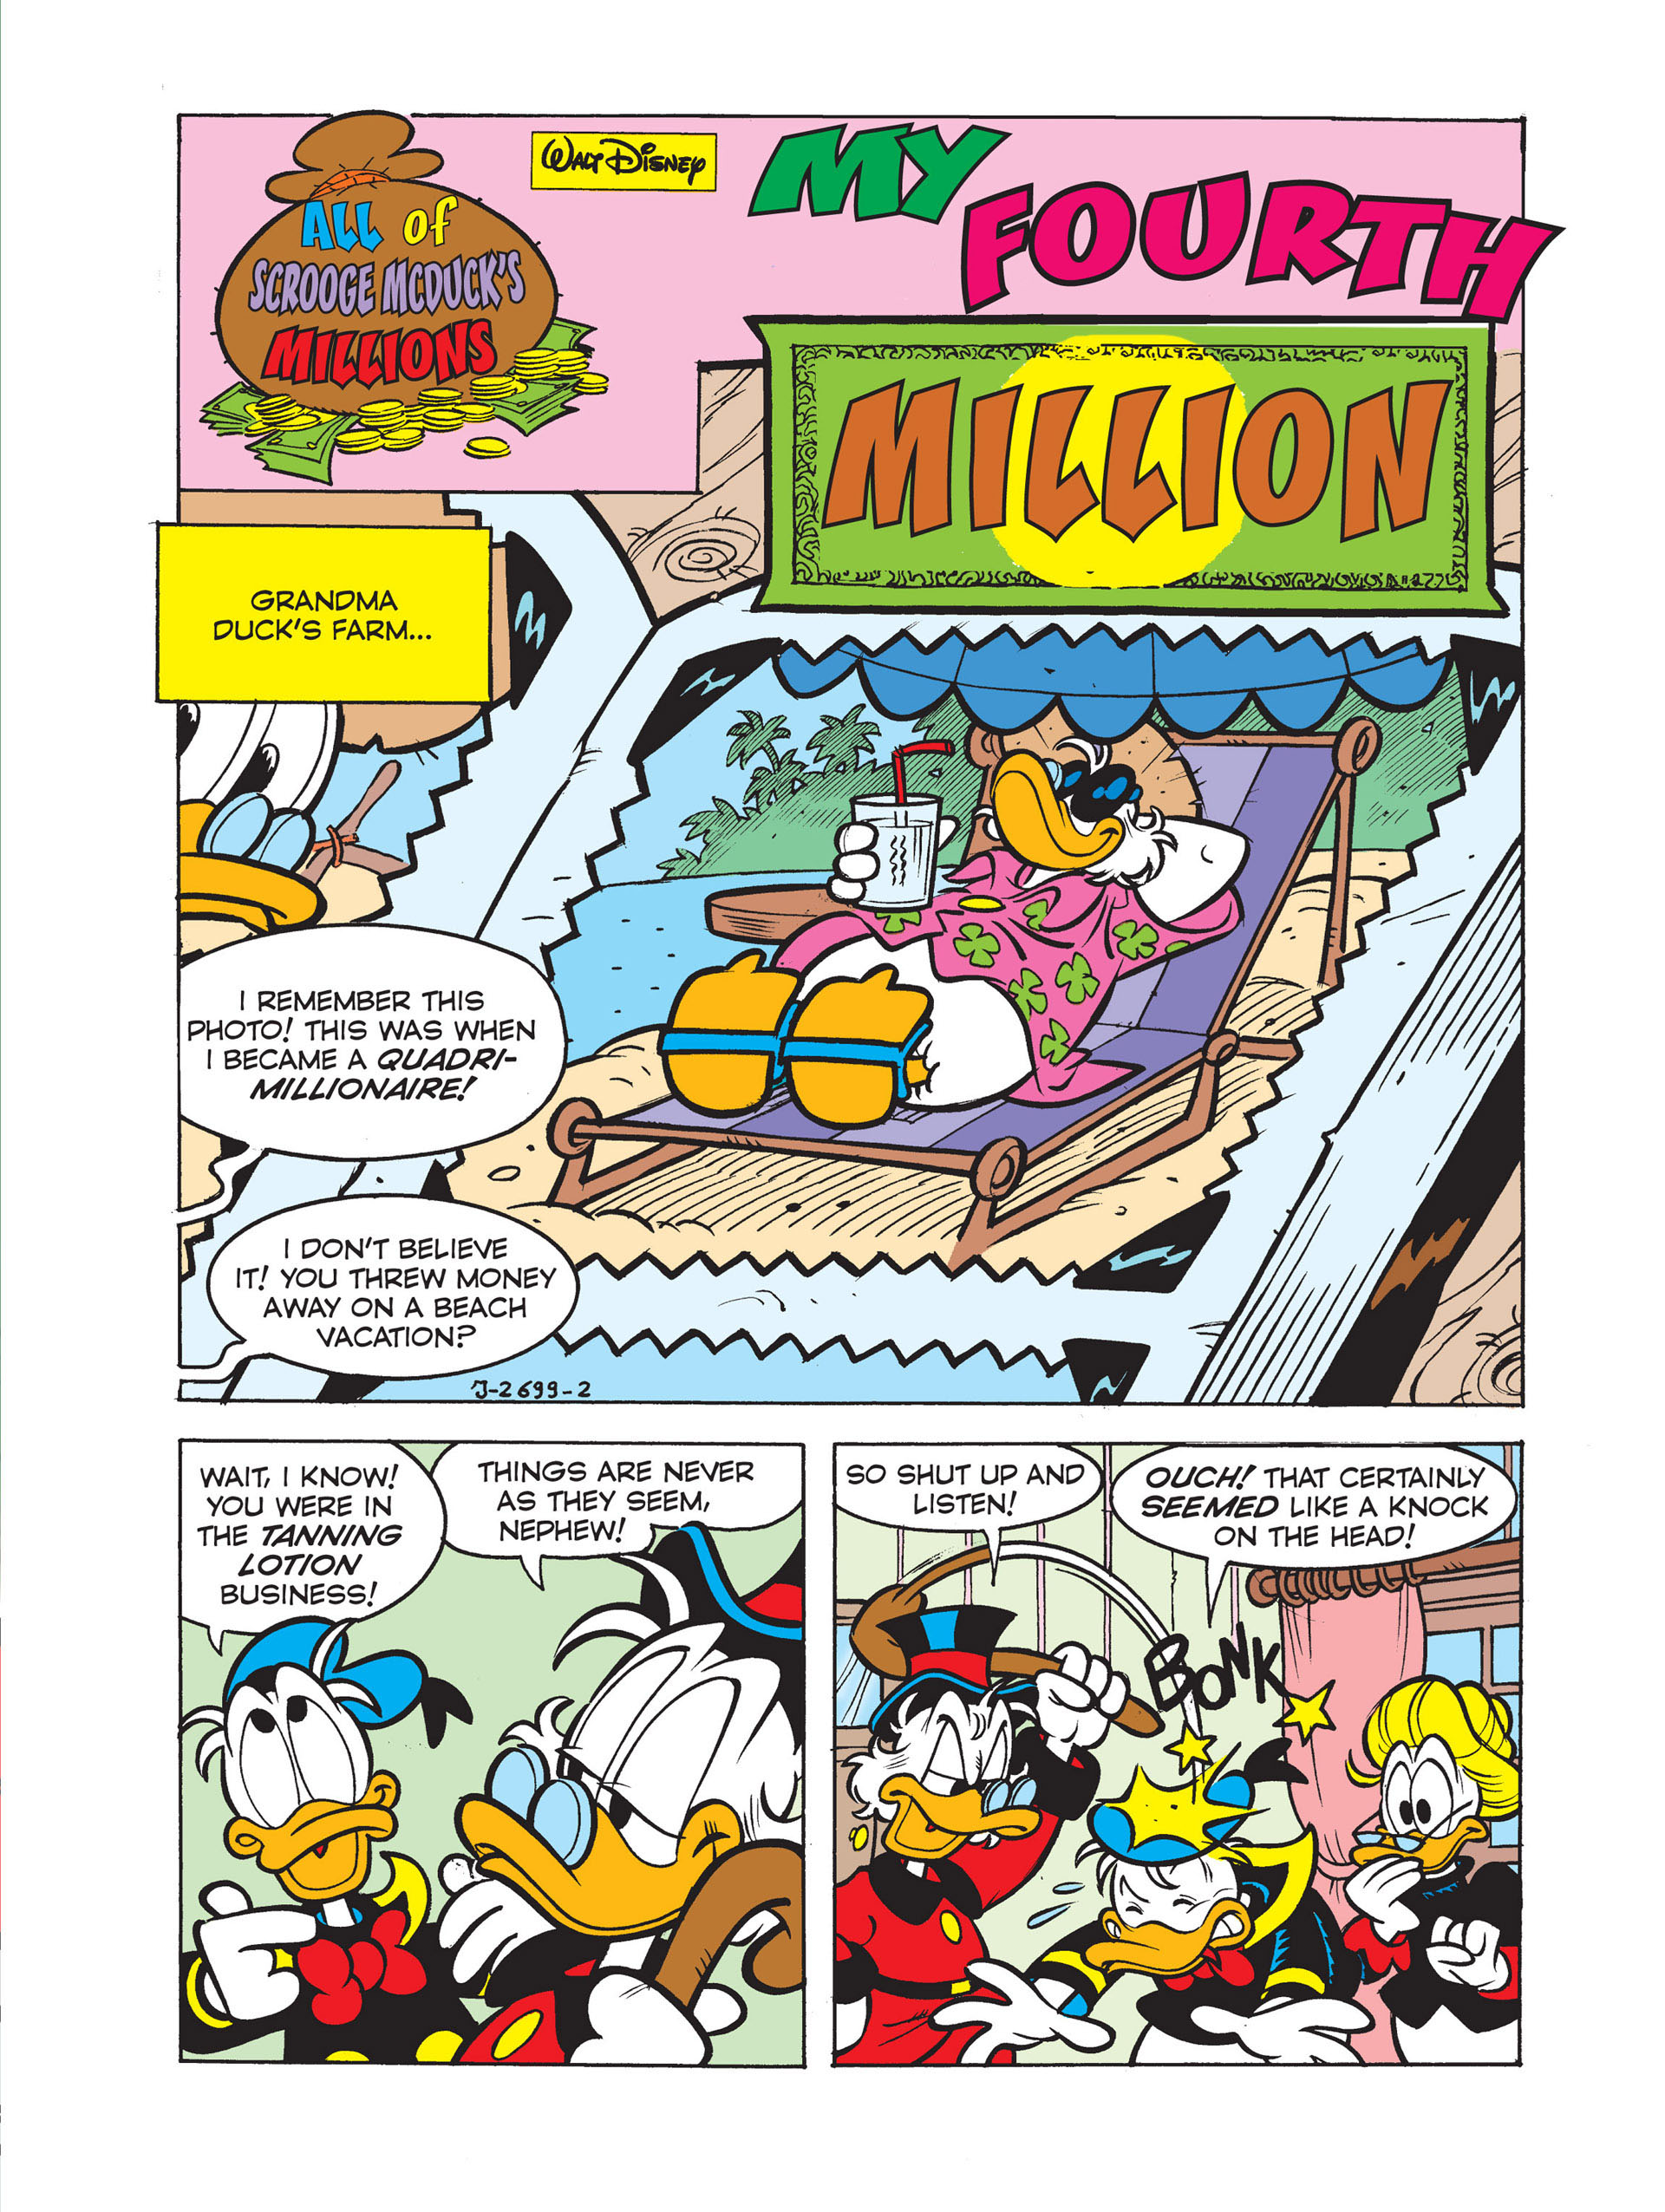 Read online All of Scrooge McDuck's Millions comic -  Issue #4 - 3